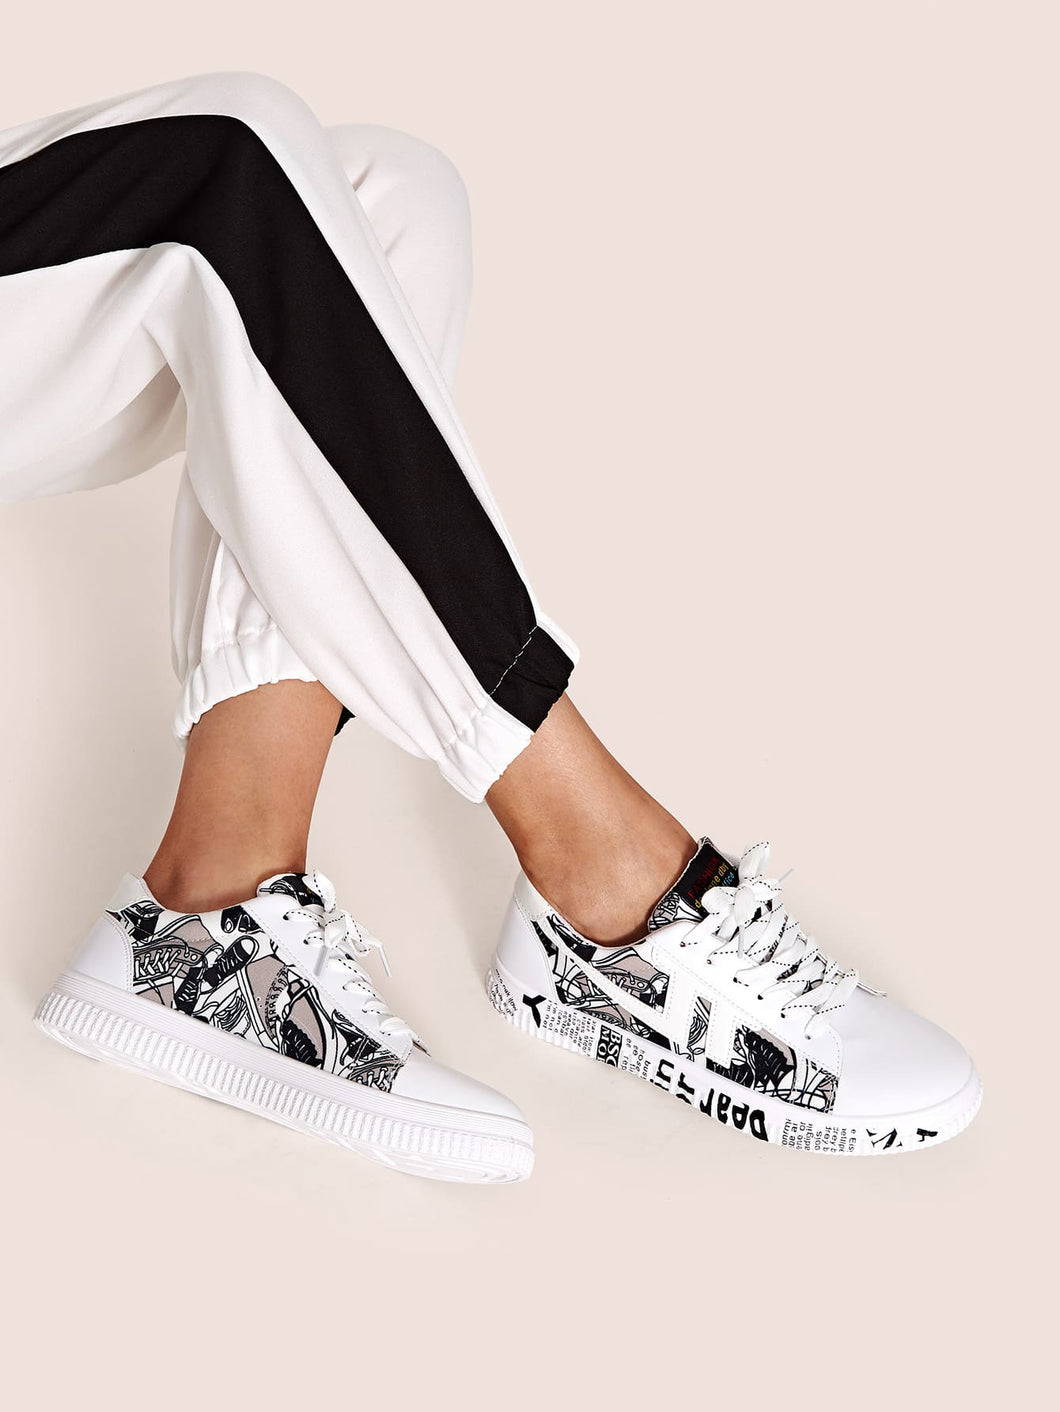 LETTER SNEAKERS Letter Graphic Lace Up Sneakers - EK CHIC